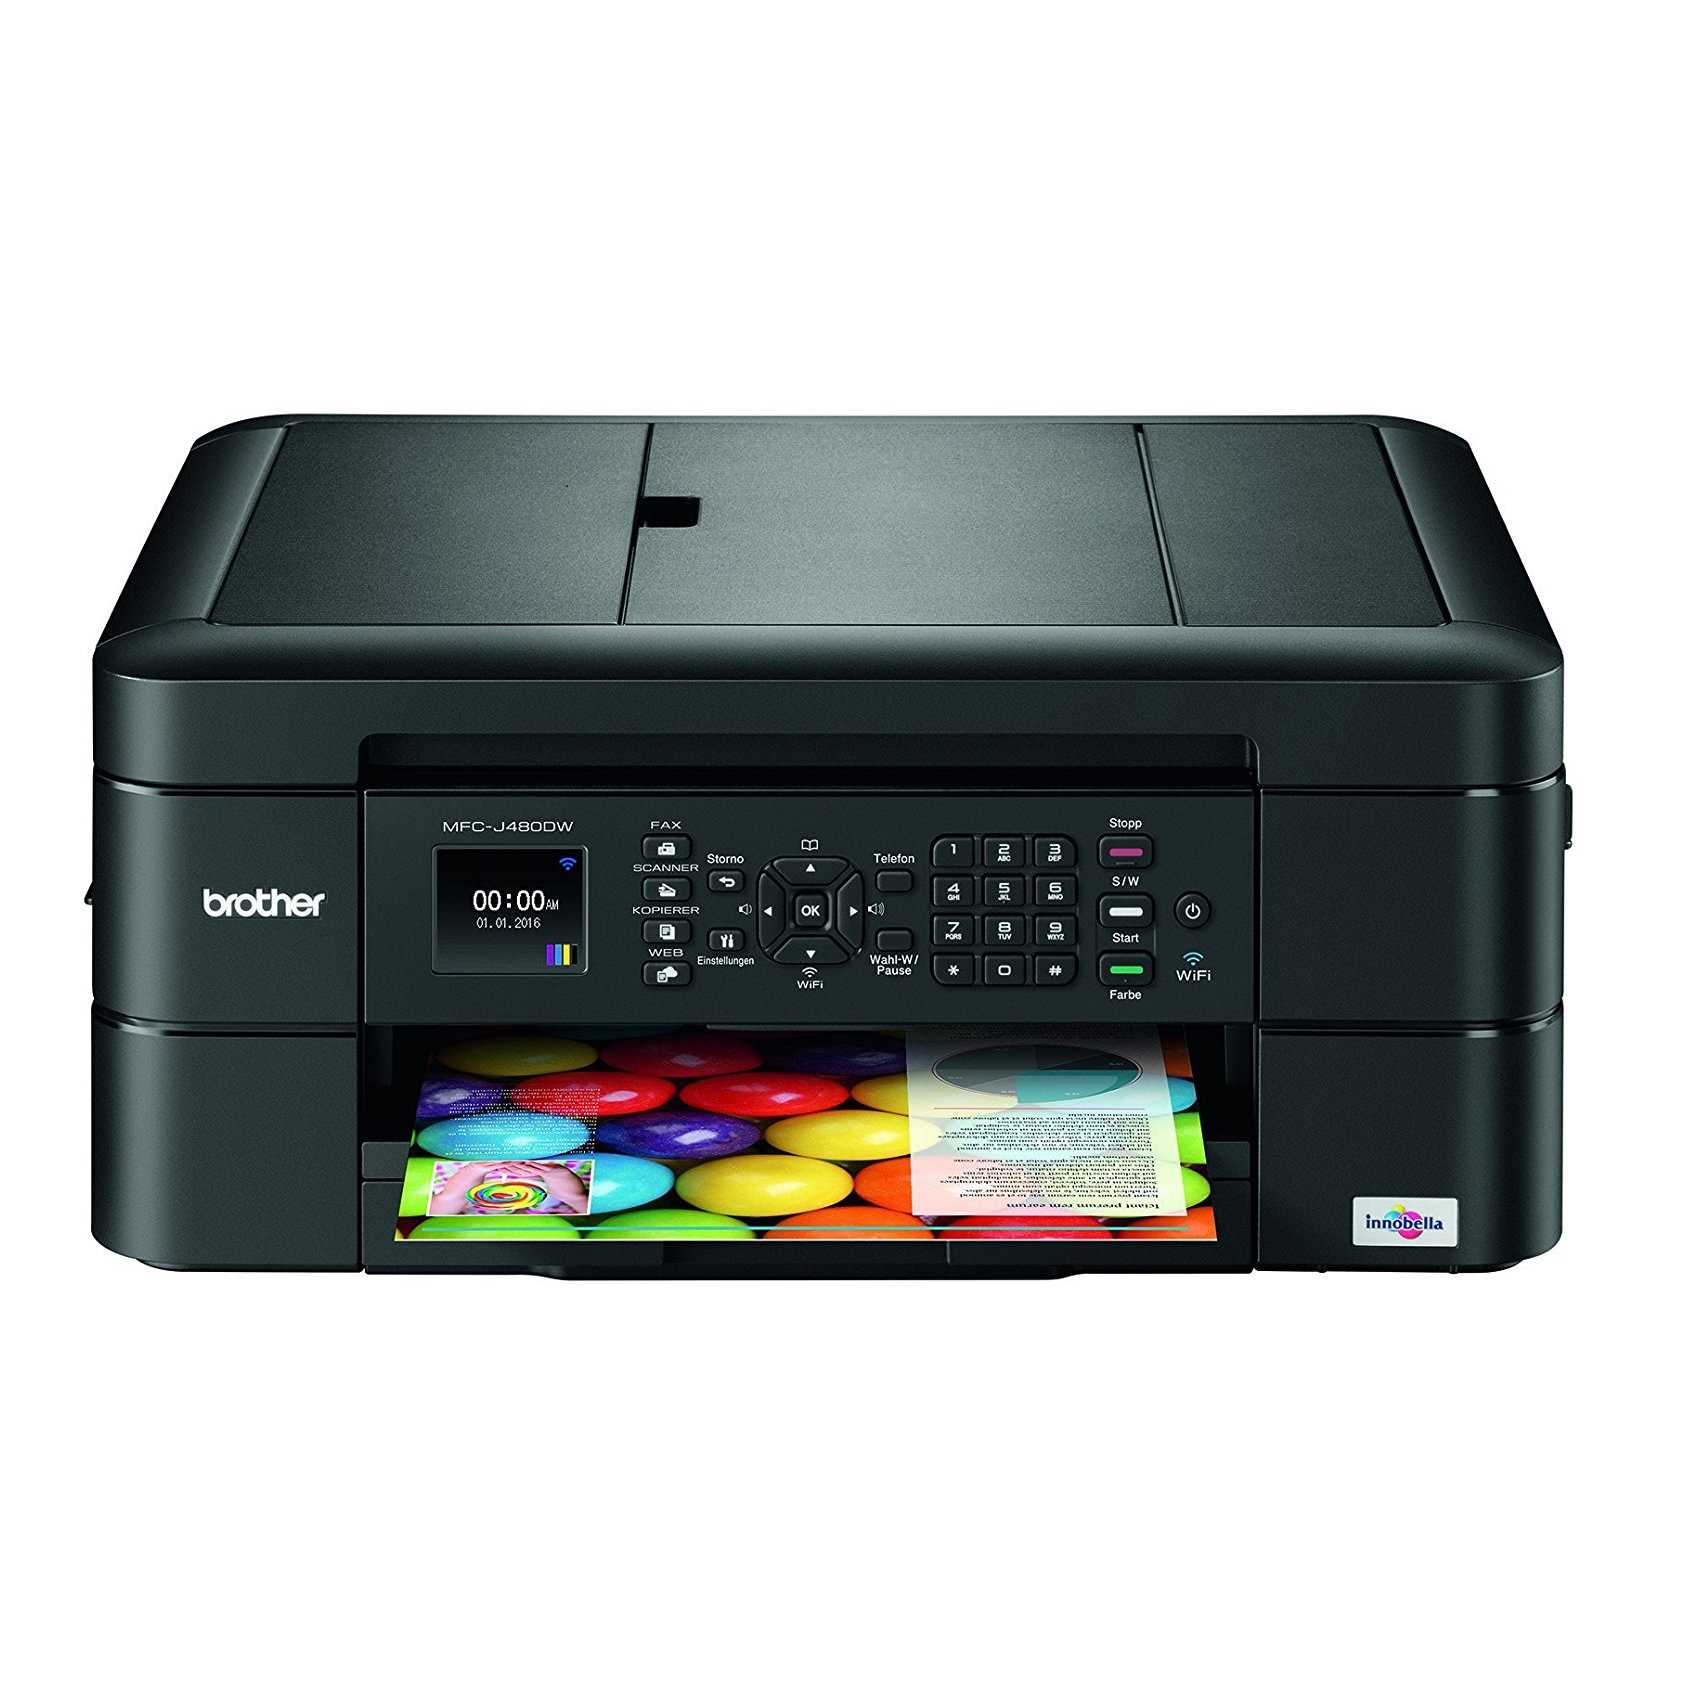 Brother MFC-J480DW Inkjet All In One Printer